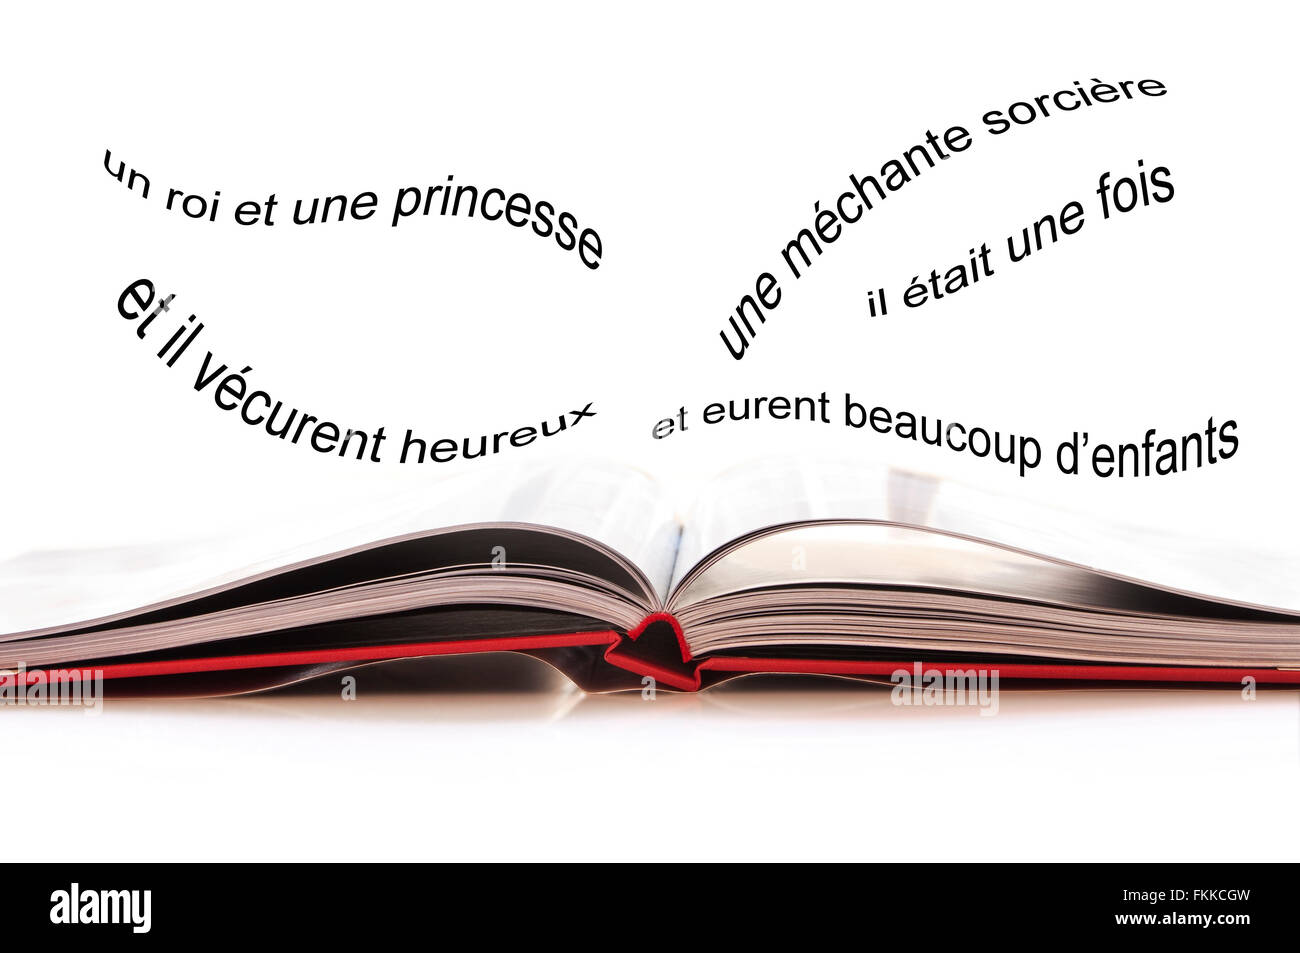 Open book, French text with the begining of an imaginary fairy tale - Stock Image